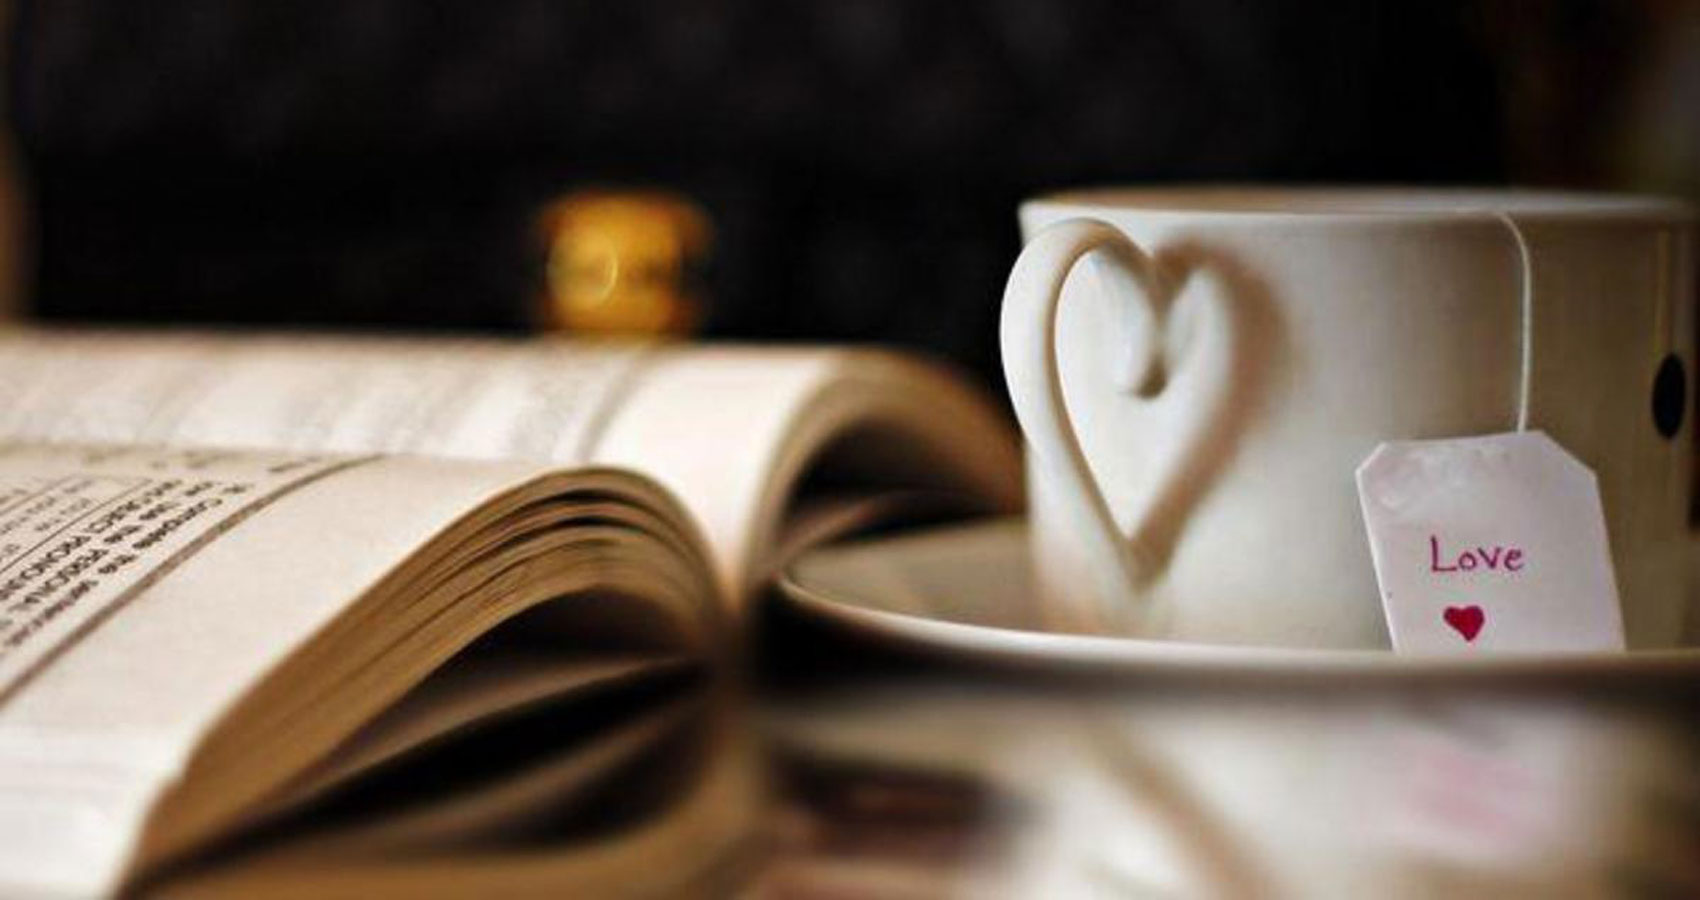 Books, Tea and Love by Natalia Aeschliman at Spillwords.com